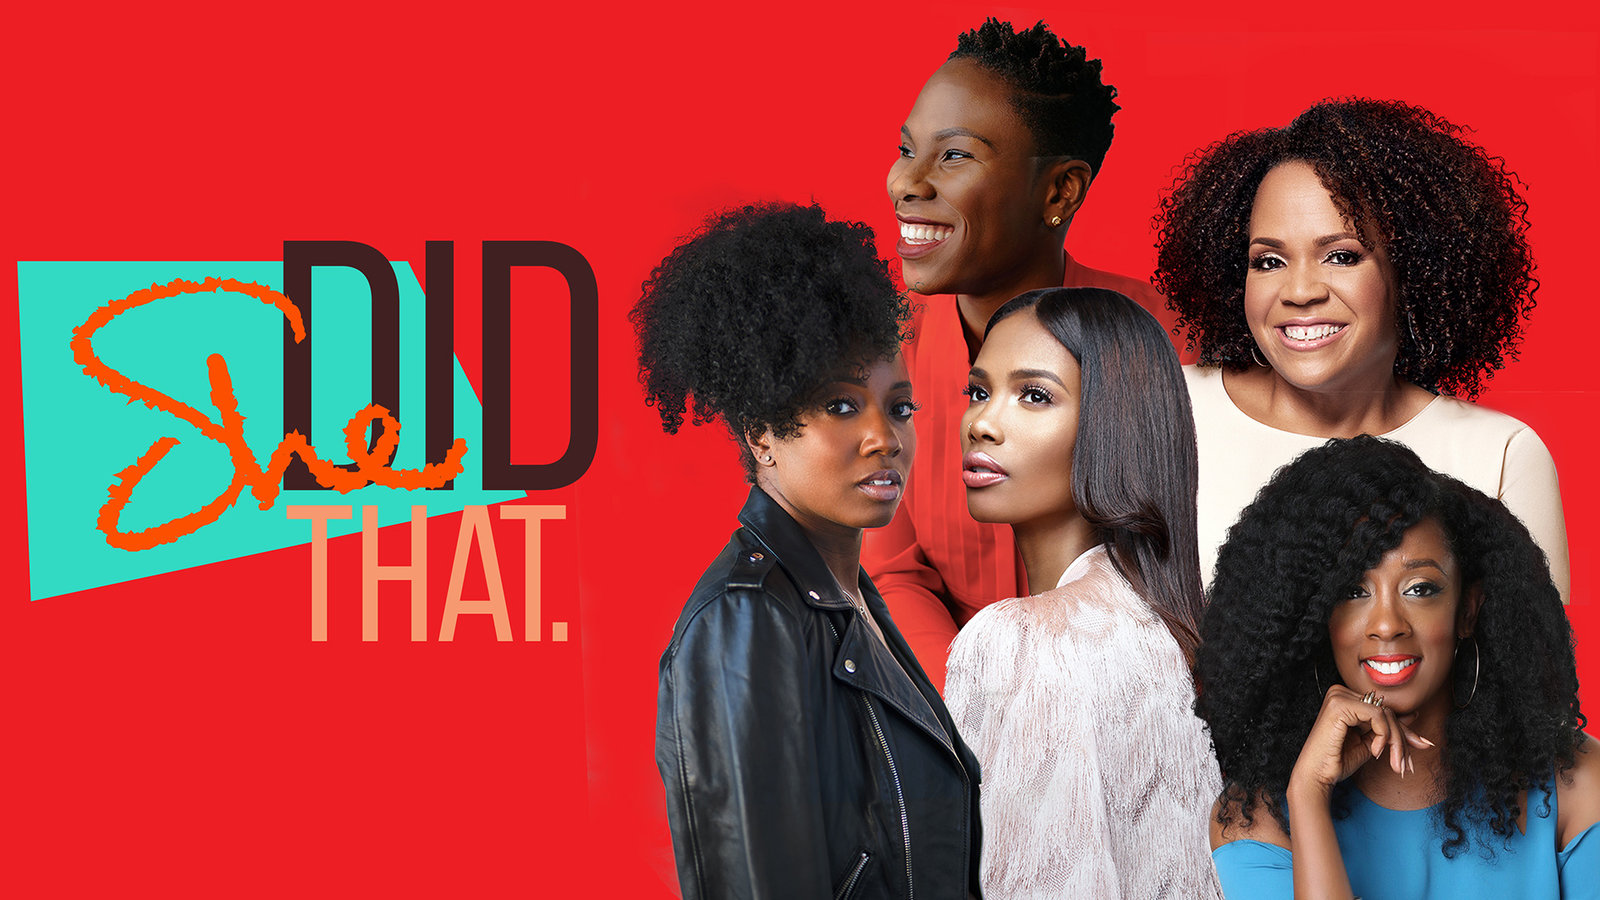 She Did That - The Passionate Pursuits of Black women Entrepreneurs